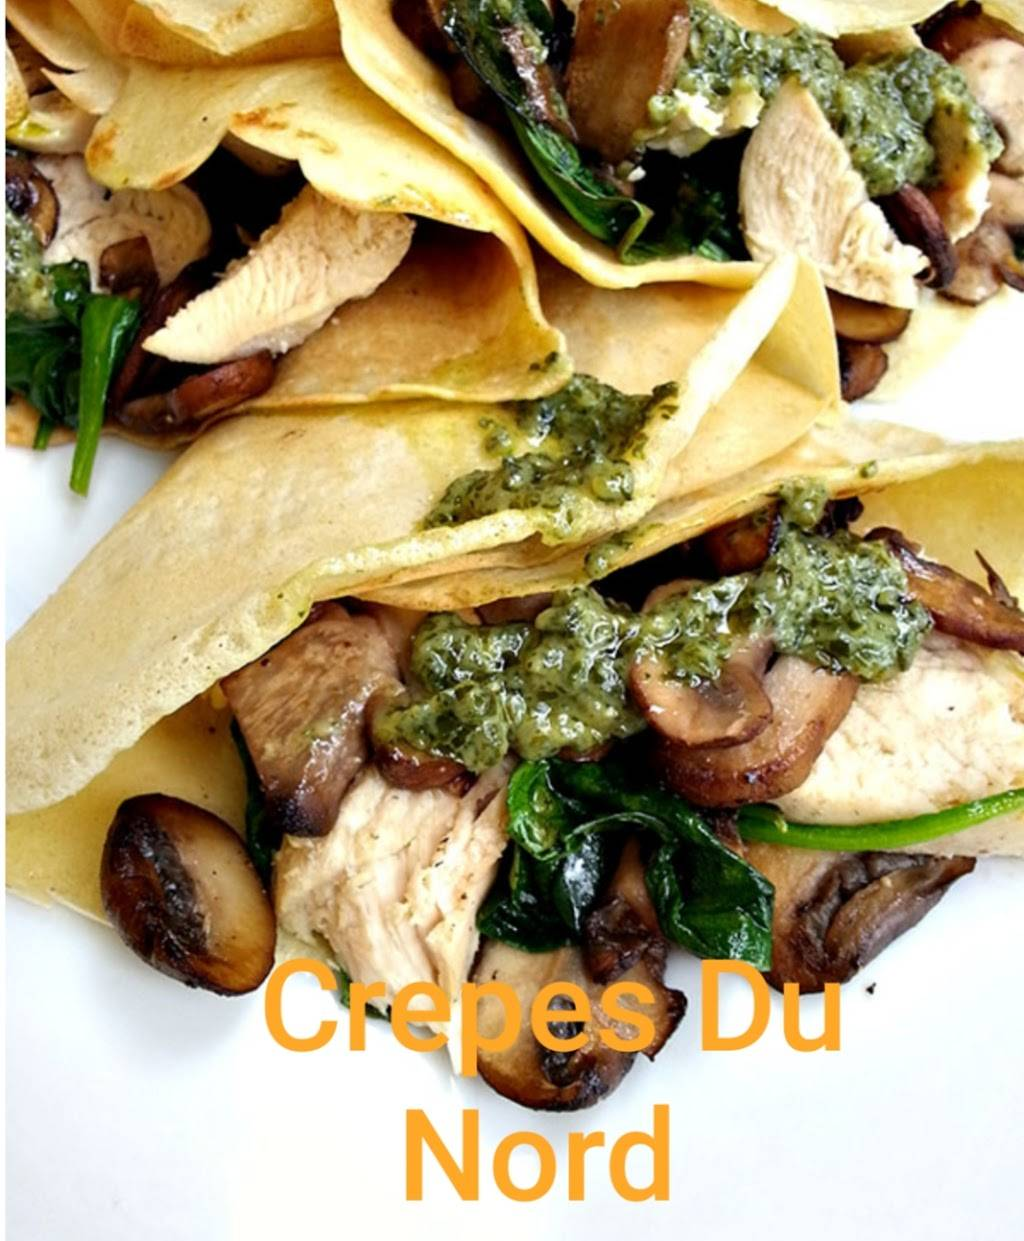 Crepes Du Nord   restaurant   400 Commons Way Space 1082, Bridgewater, NJ 08807, USA   9087256400 OR +1 908-725-6400